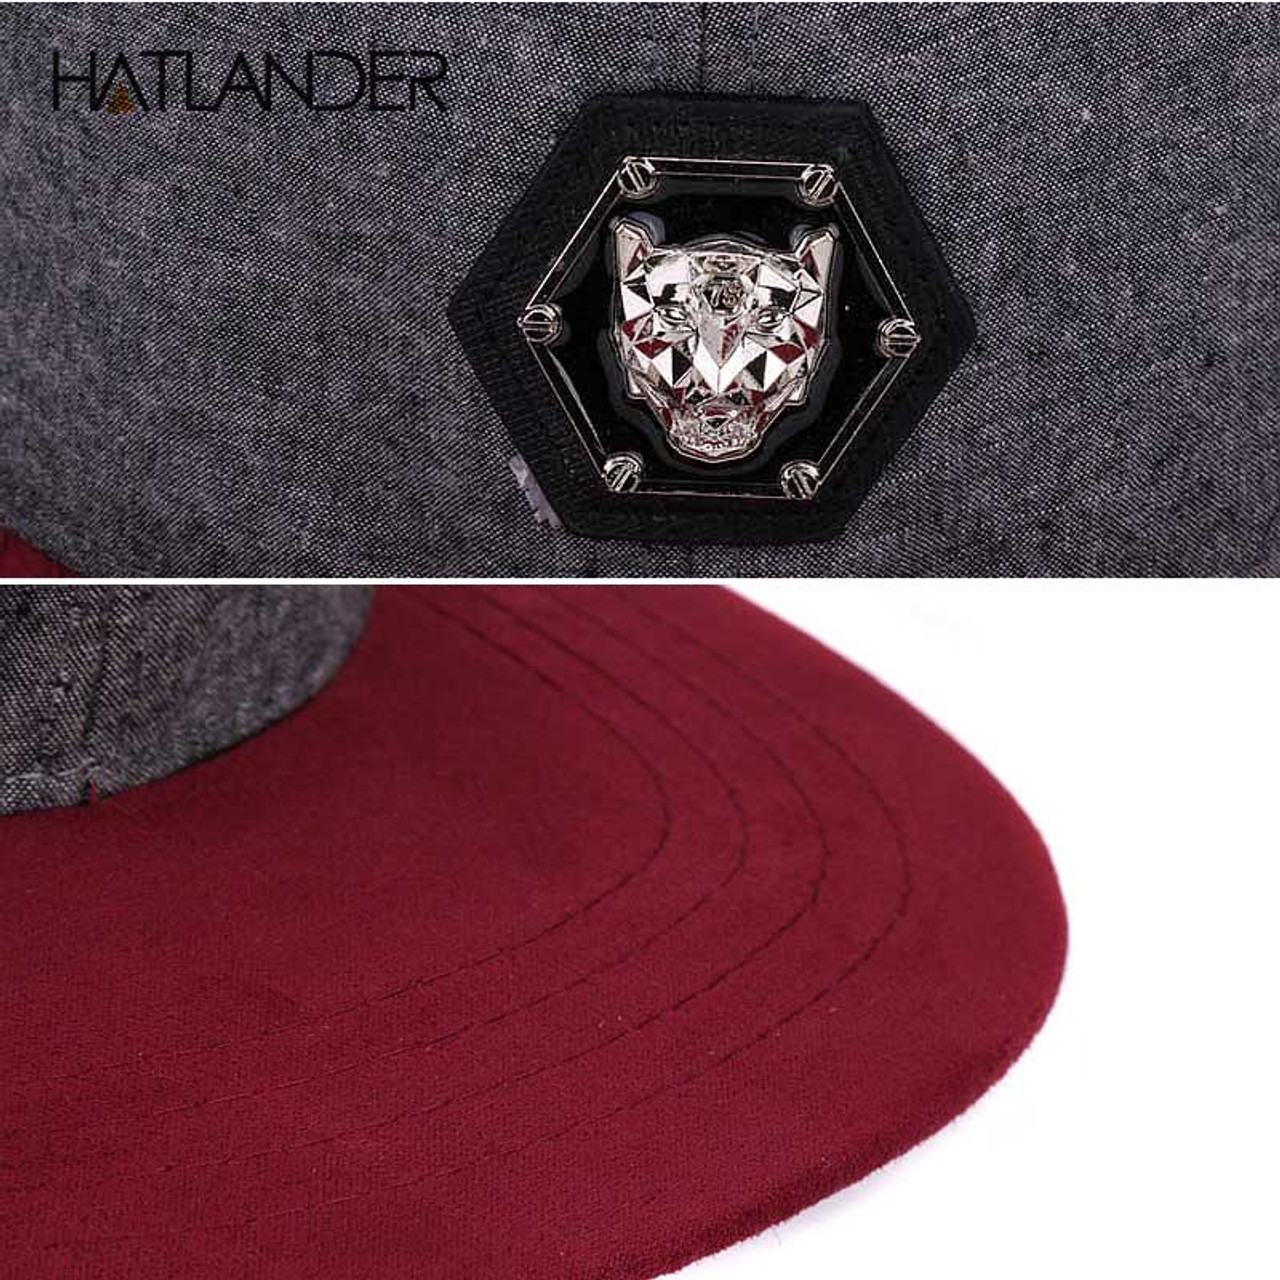 0a284c3f4c52f ... HATLANDER branded adjustable baseball caps women Kpop hip hop cap  outdoor flat brim mens hats gorras